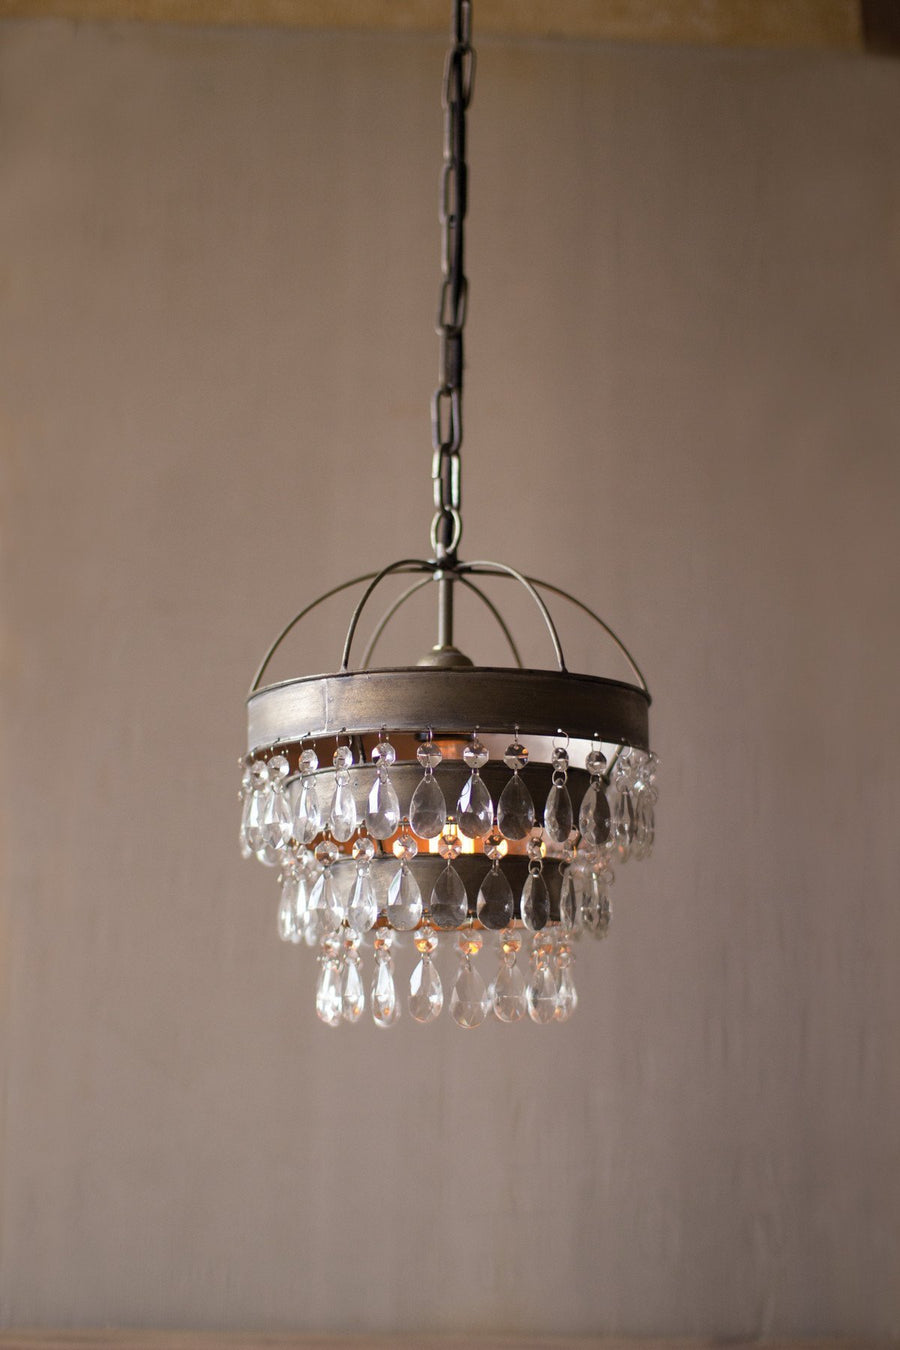 Lighting urban farmhouse designs urban farmhouse designs pendant lamp with layered shade and hanging glass gems arubaitofo Image collections